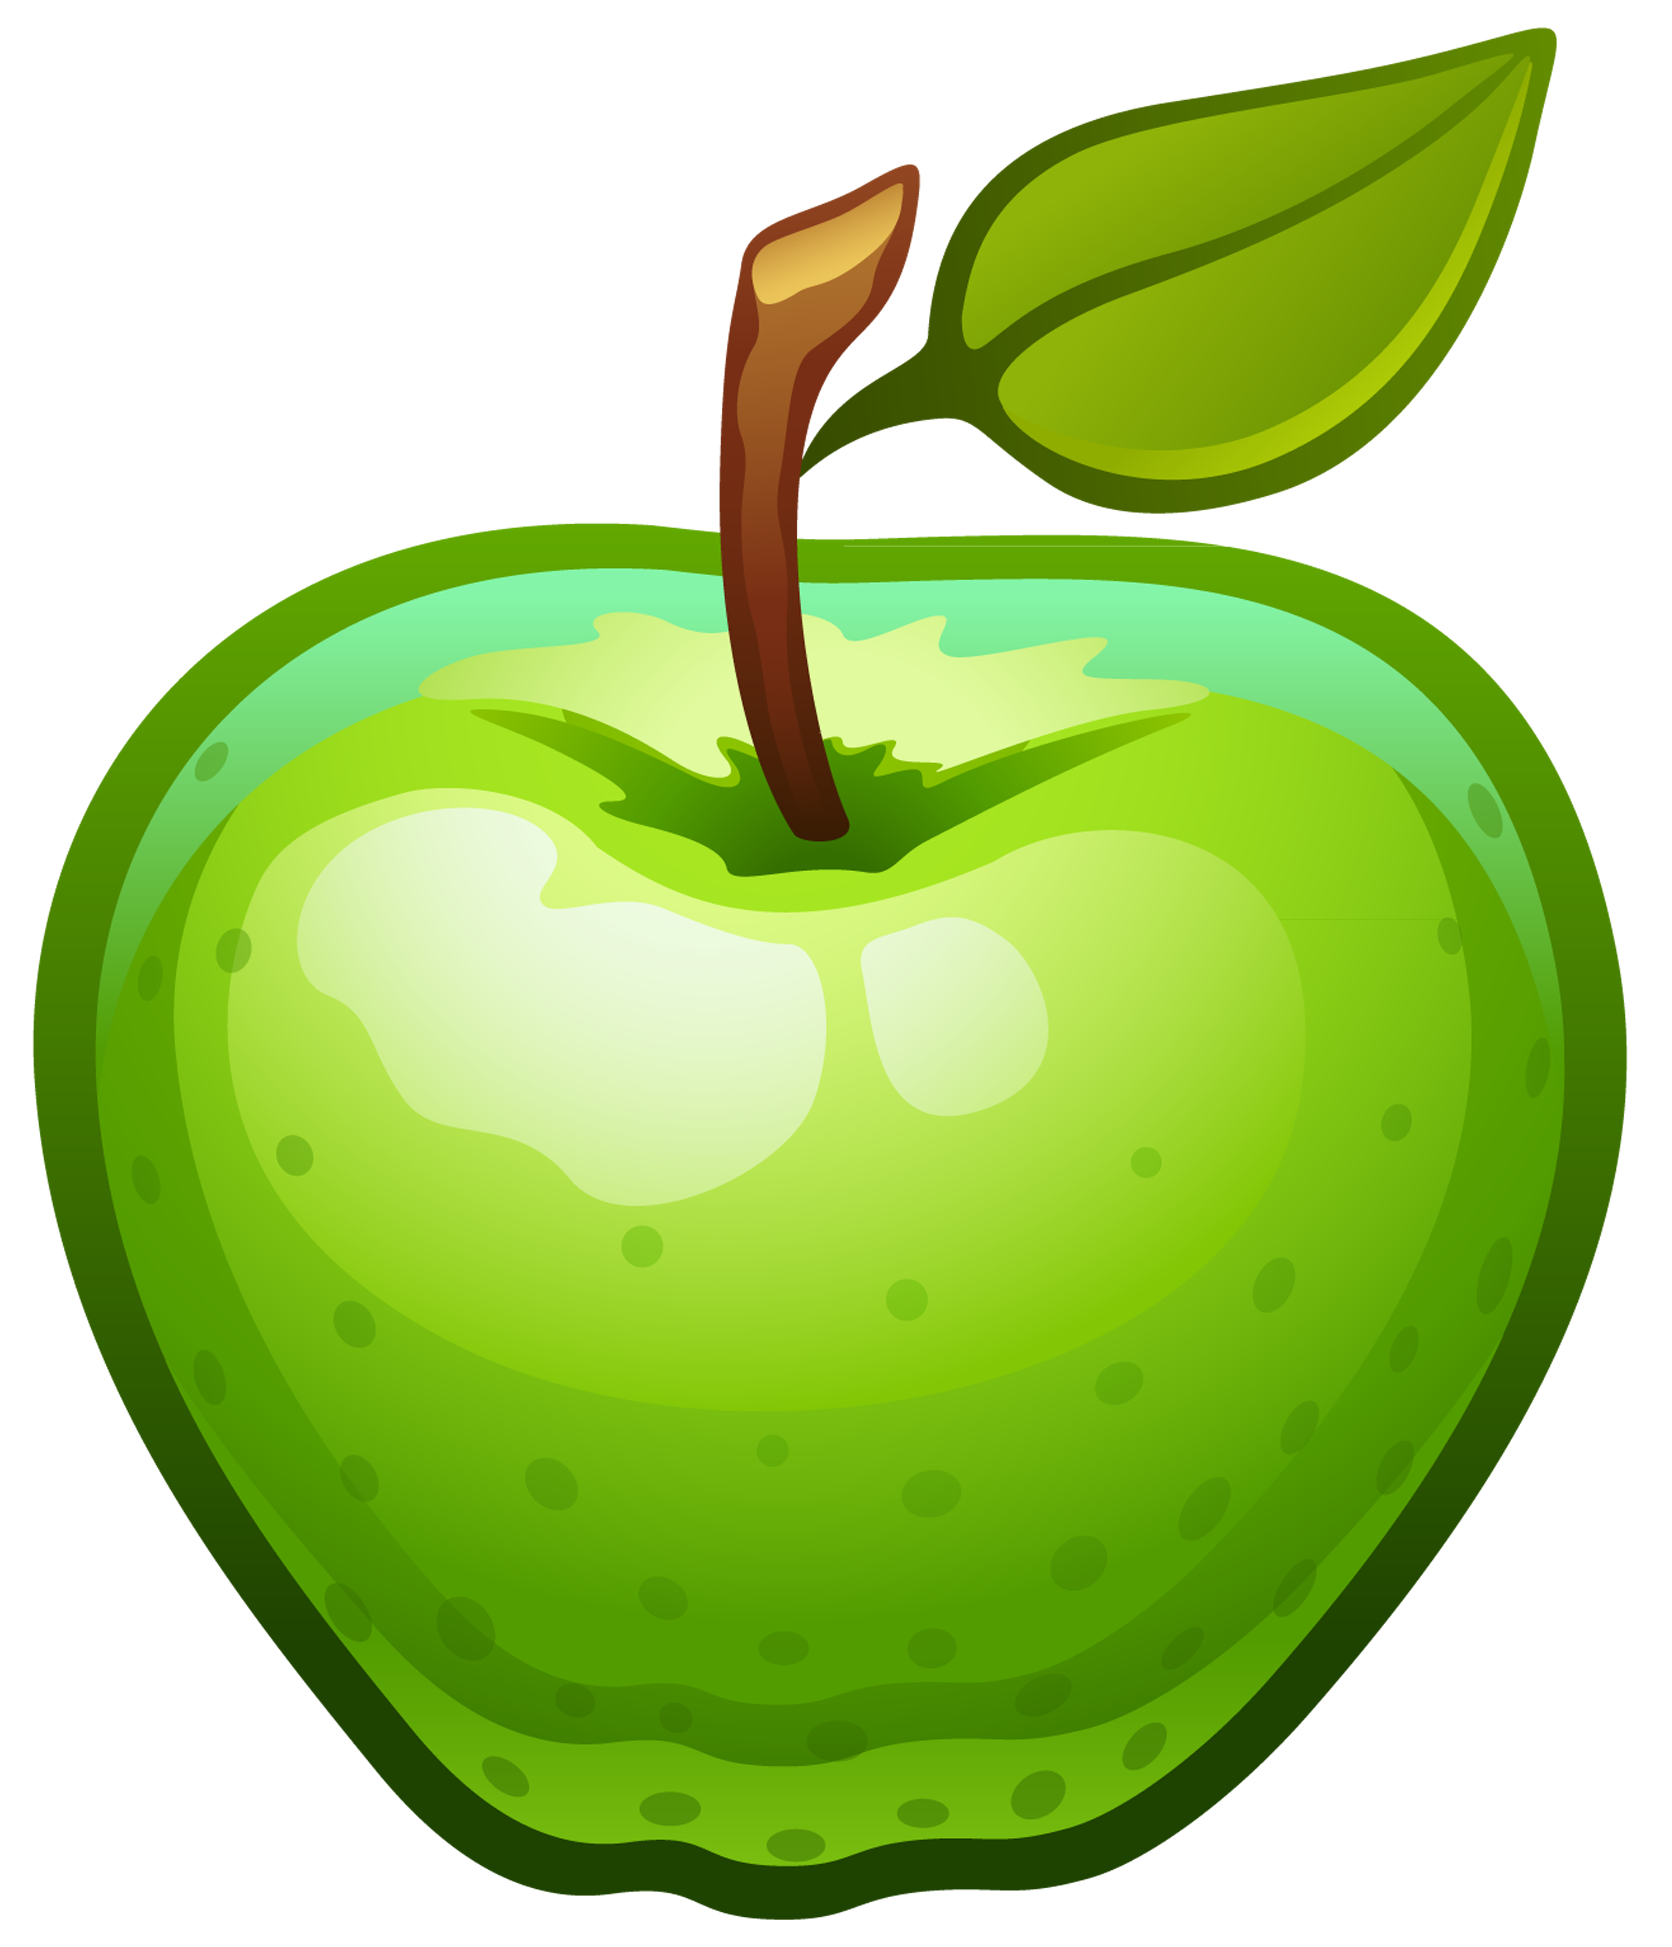 Clipart green apple images image library stock Large Painted Green Apple PNG Clipart | Gallery Yopriceville - High ... image library stock